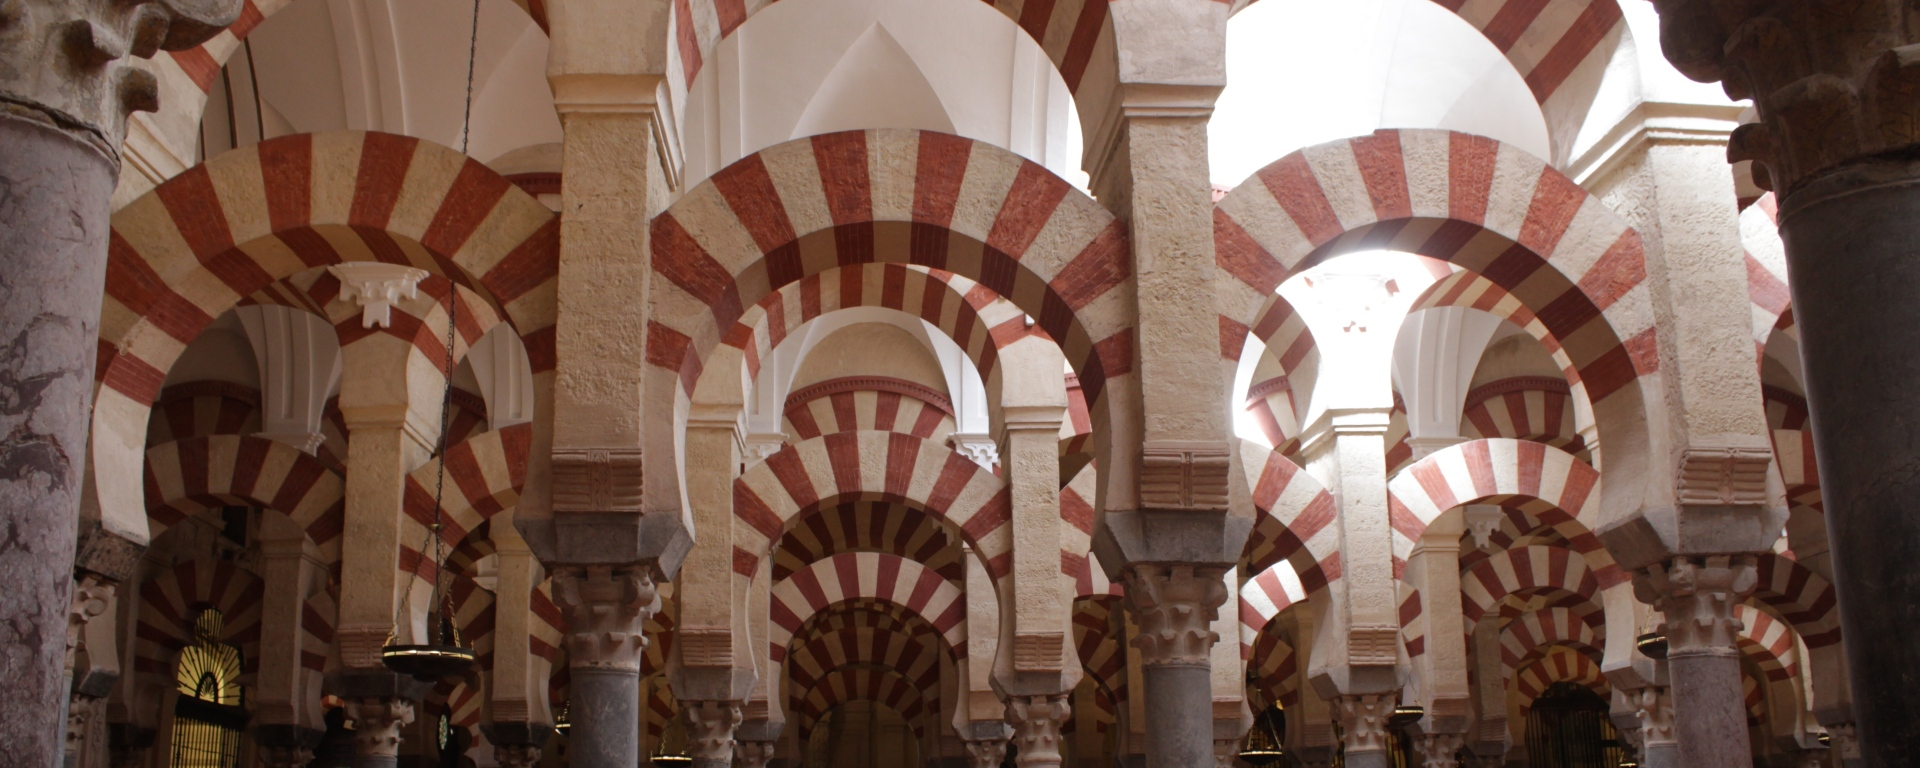 La Mezquita, Cordoba, Spain, travel, photography